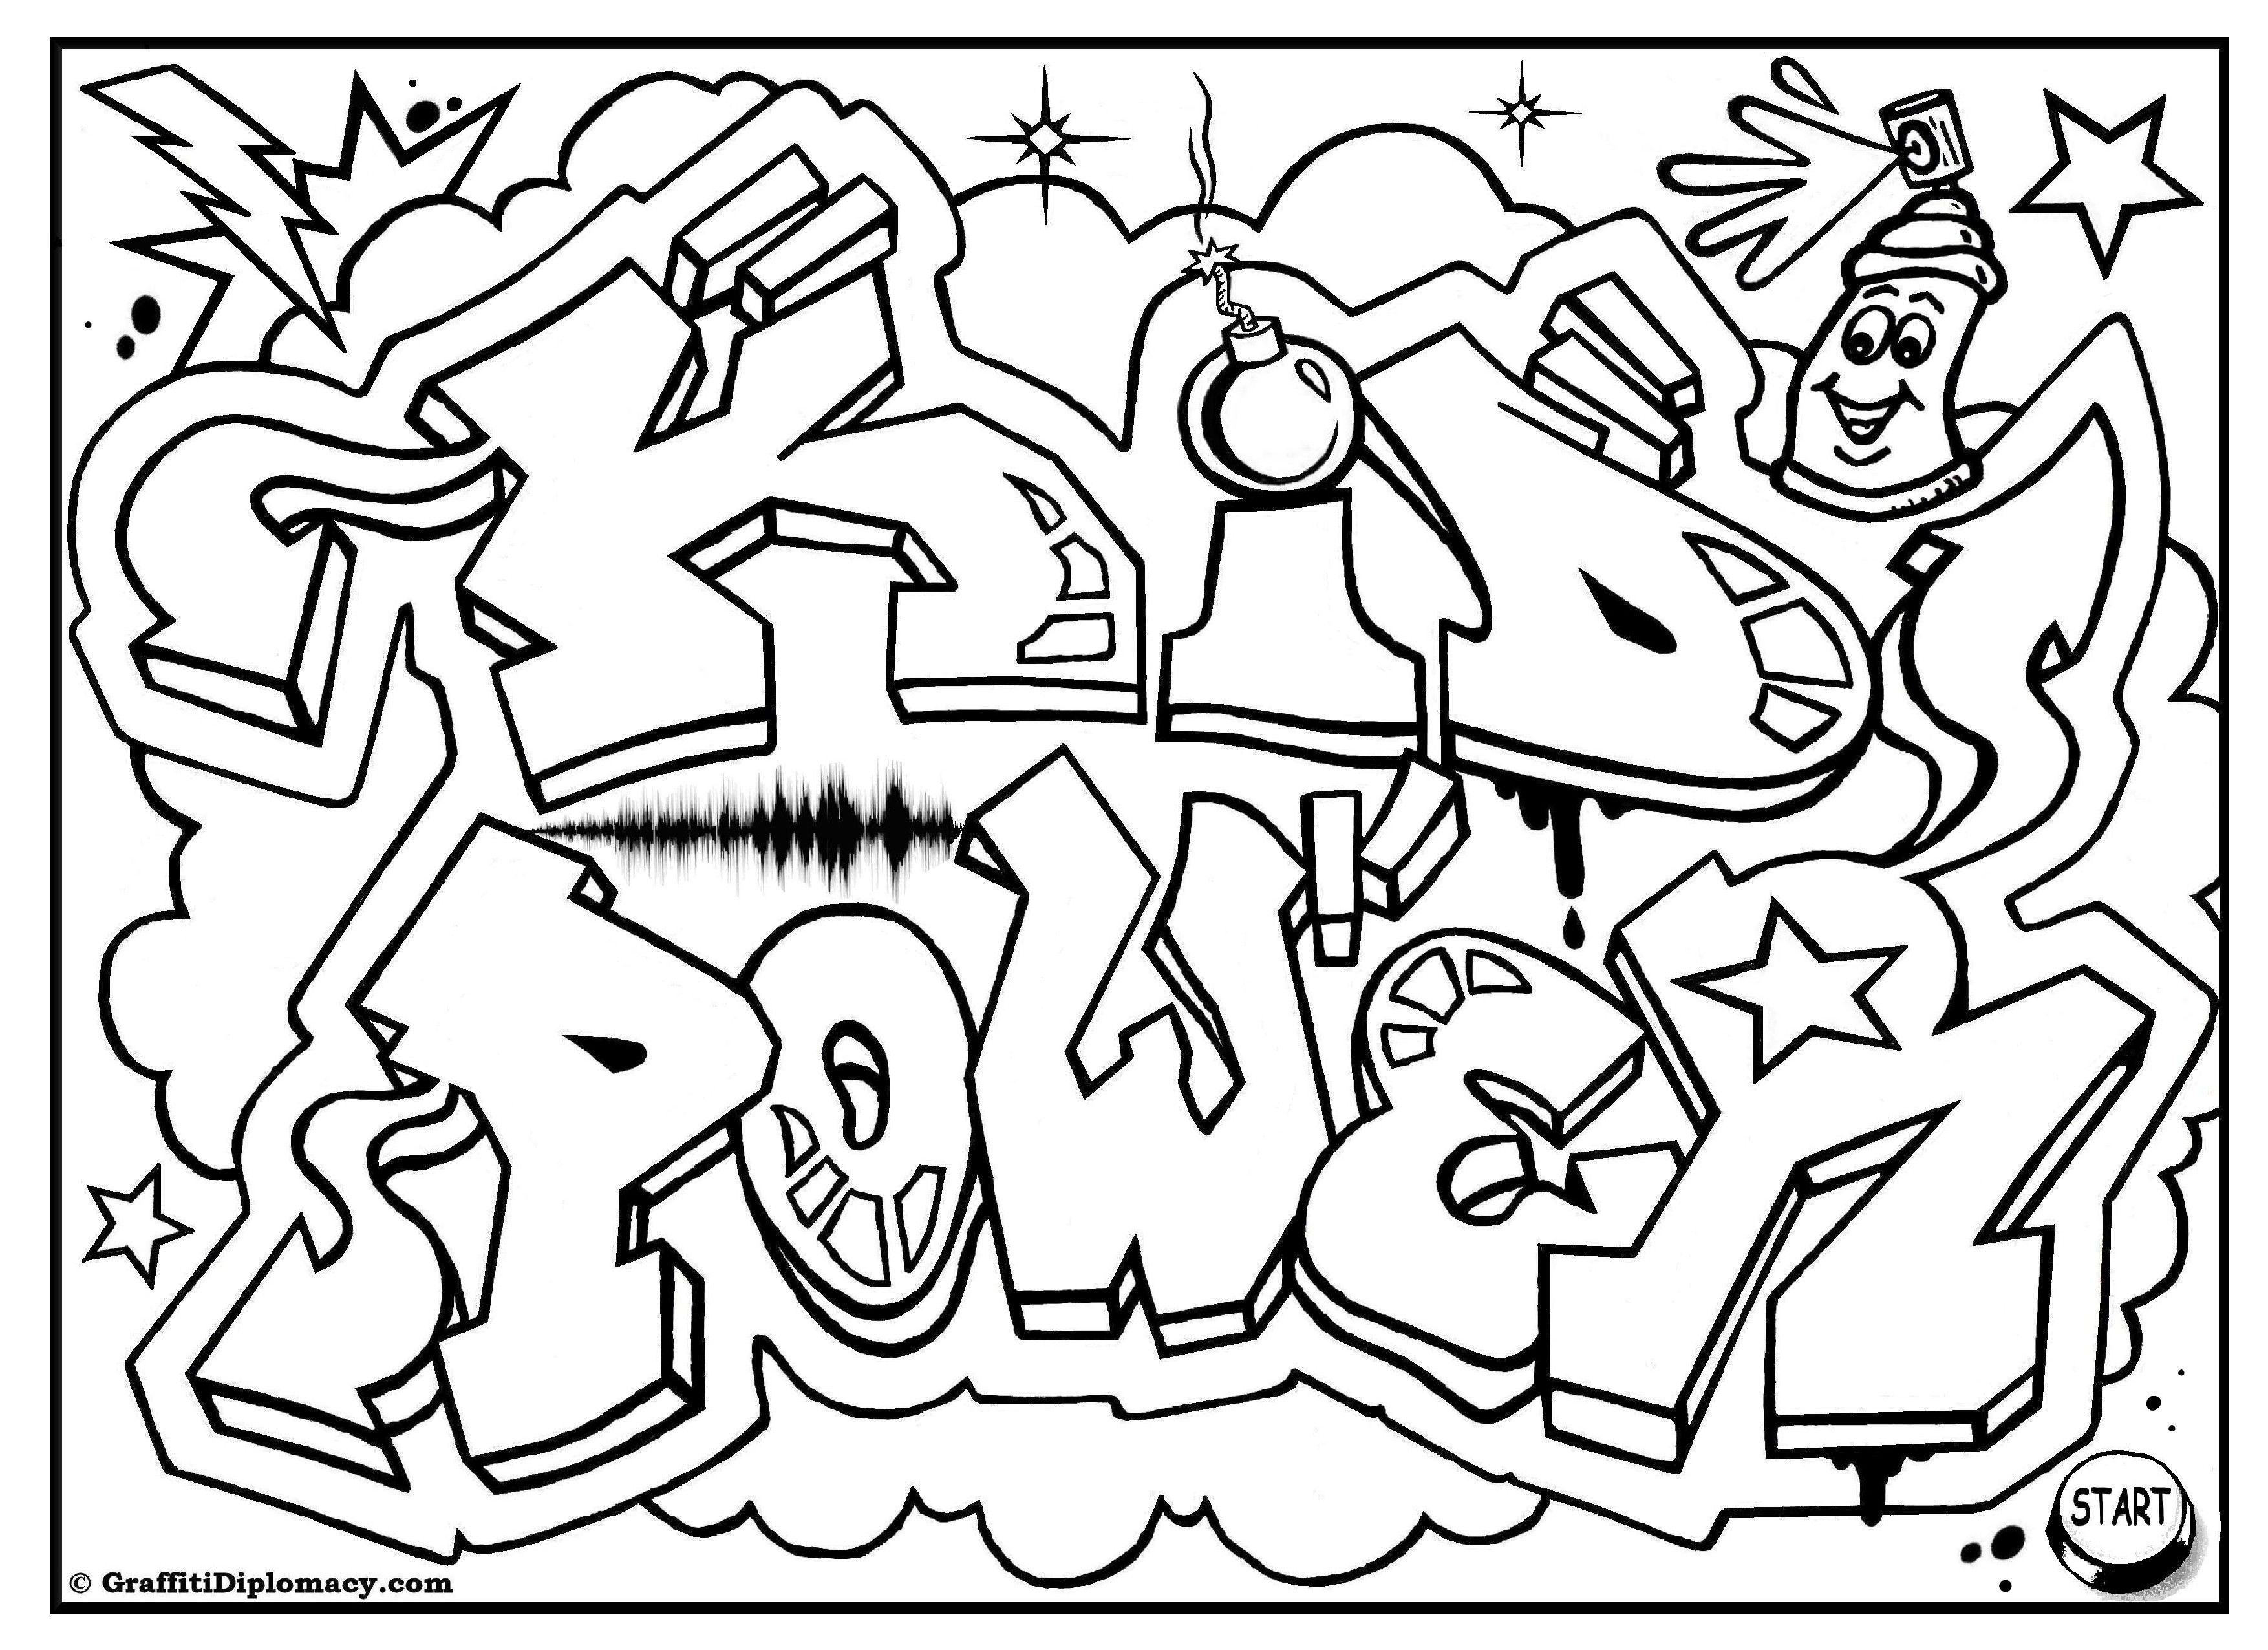 coloring graffiti pages online - photo#10